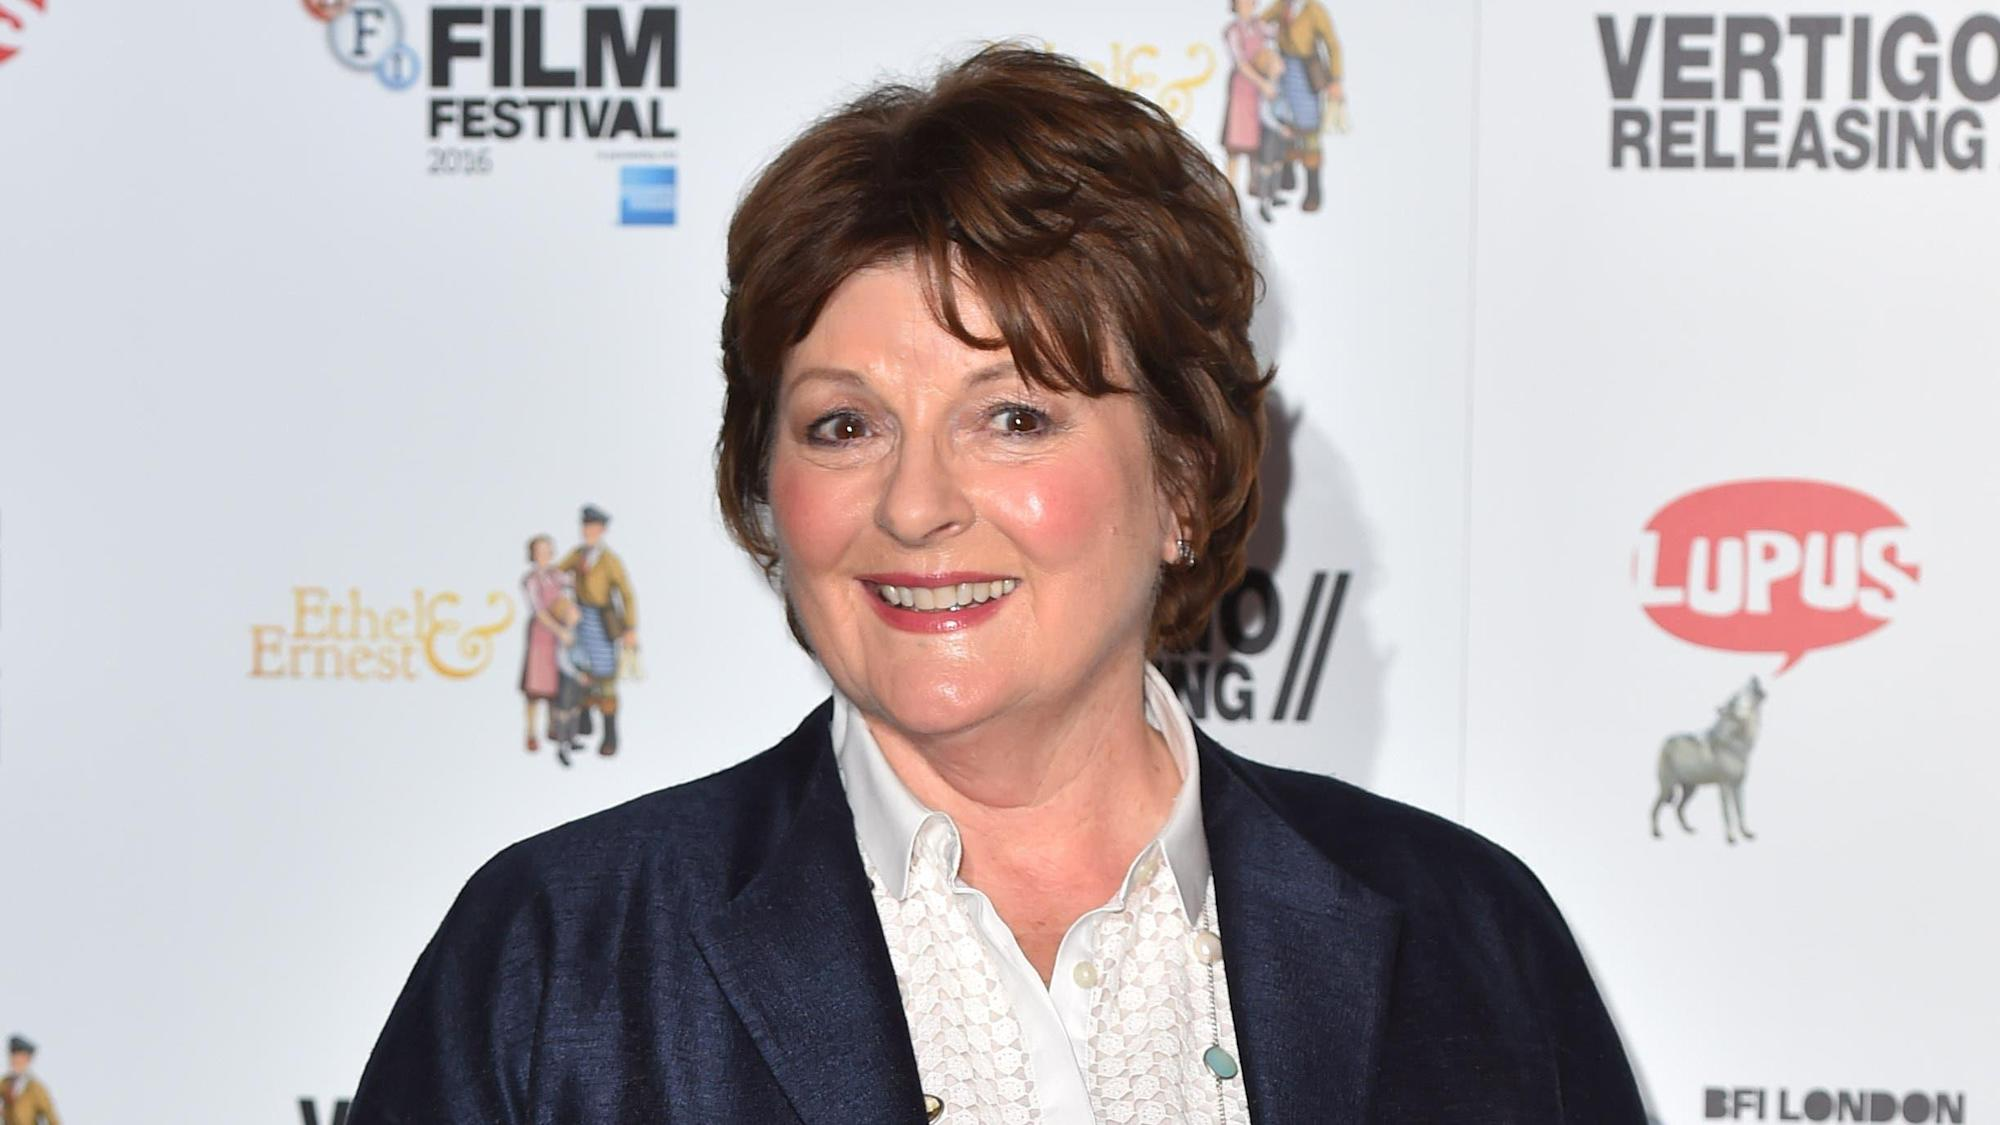 Brenda Blethyn on why she 'fully expects' to work until her dying day